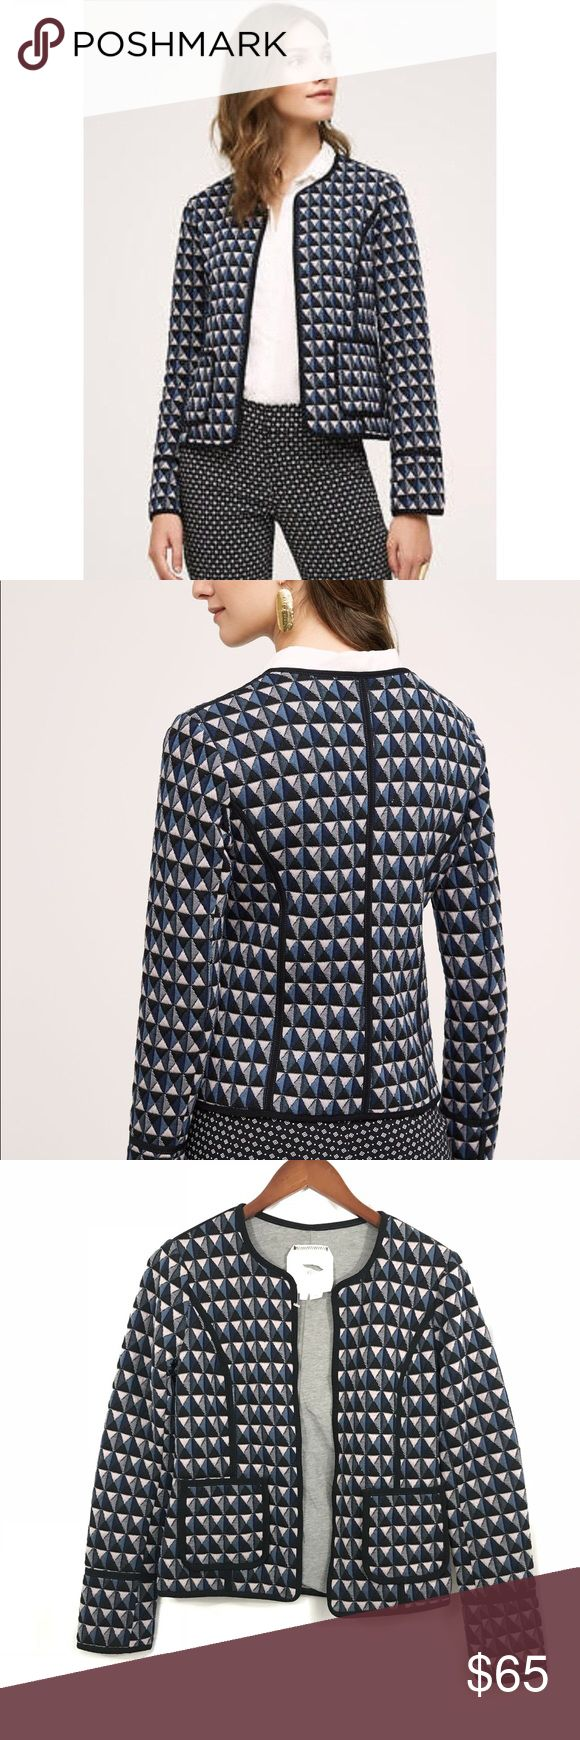 """Hei Hei Blue geometric Vala blazer jacket Size xs New without tags, tag marked to prevent returns Bust- 34"""" Length from shoulder to hem- 21"""" Anthropologie Jackets & Coats Blazers"""